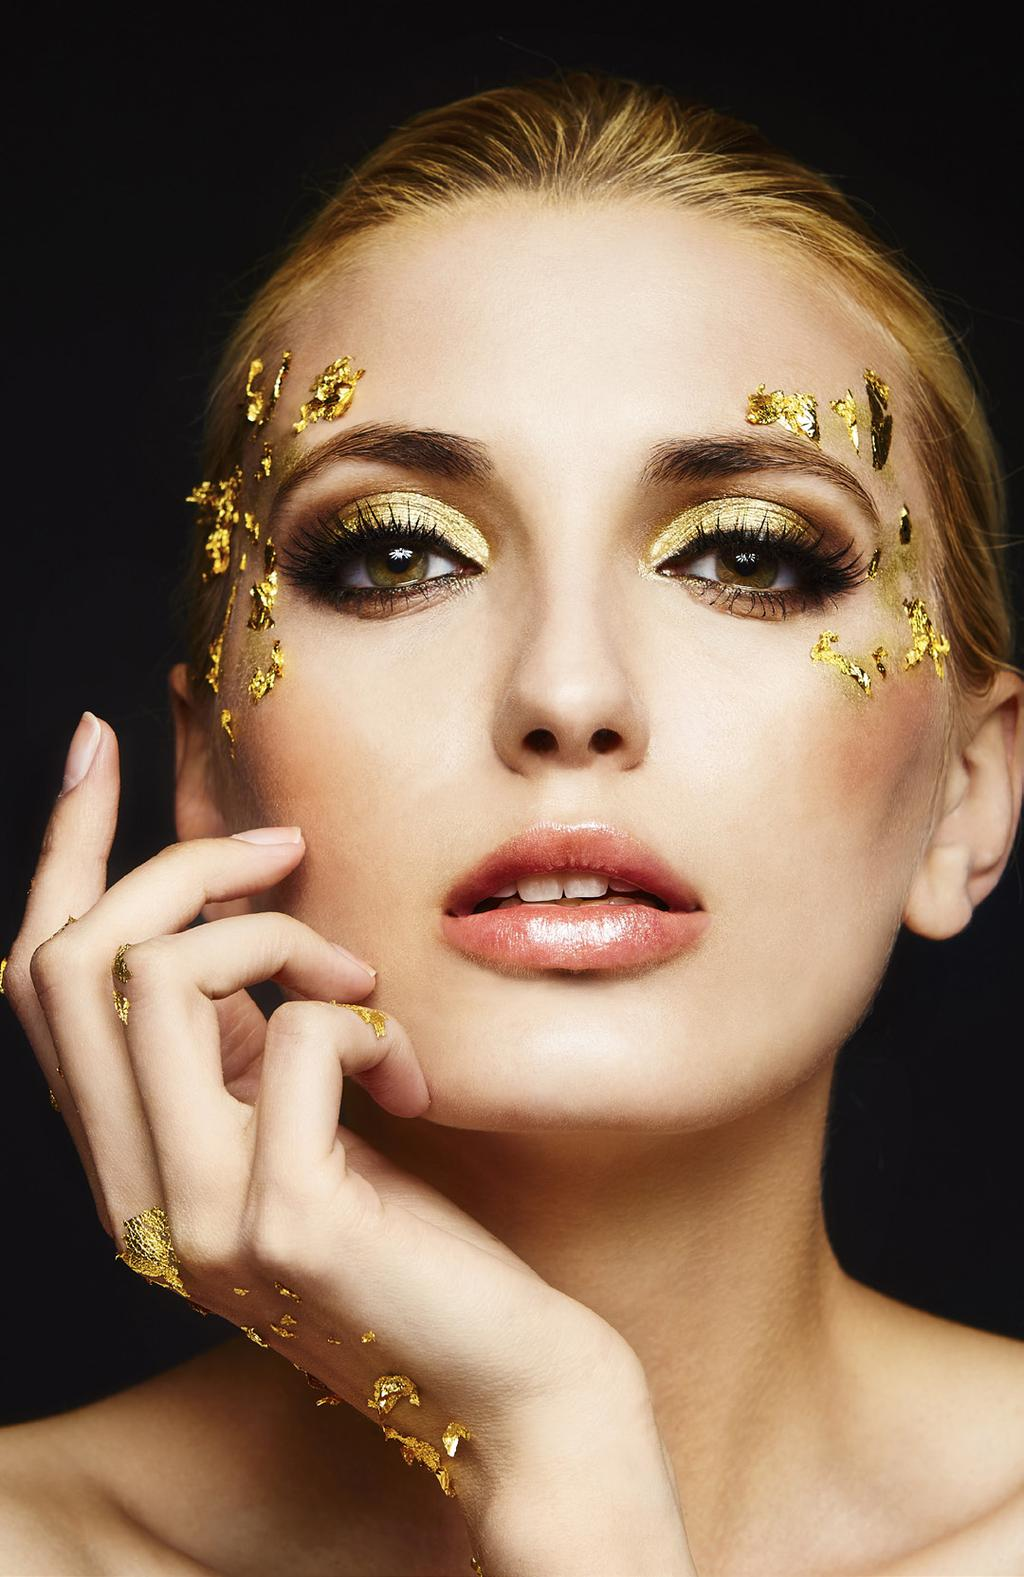 SKIN REJUVENATION ELIXIR SIGNATURE 24-CARAT FACIAL A skin brightening treatment by Carol Joy London using 24K Gold and Golden Millet Oil.